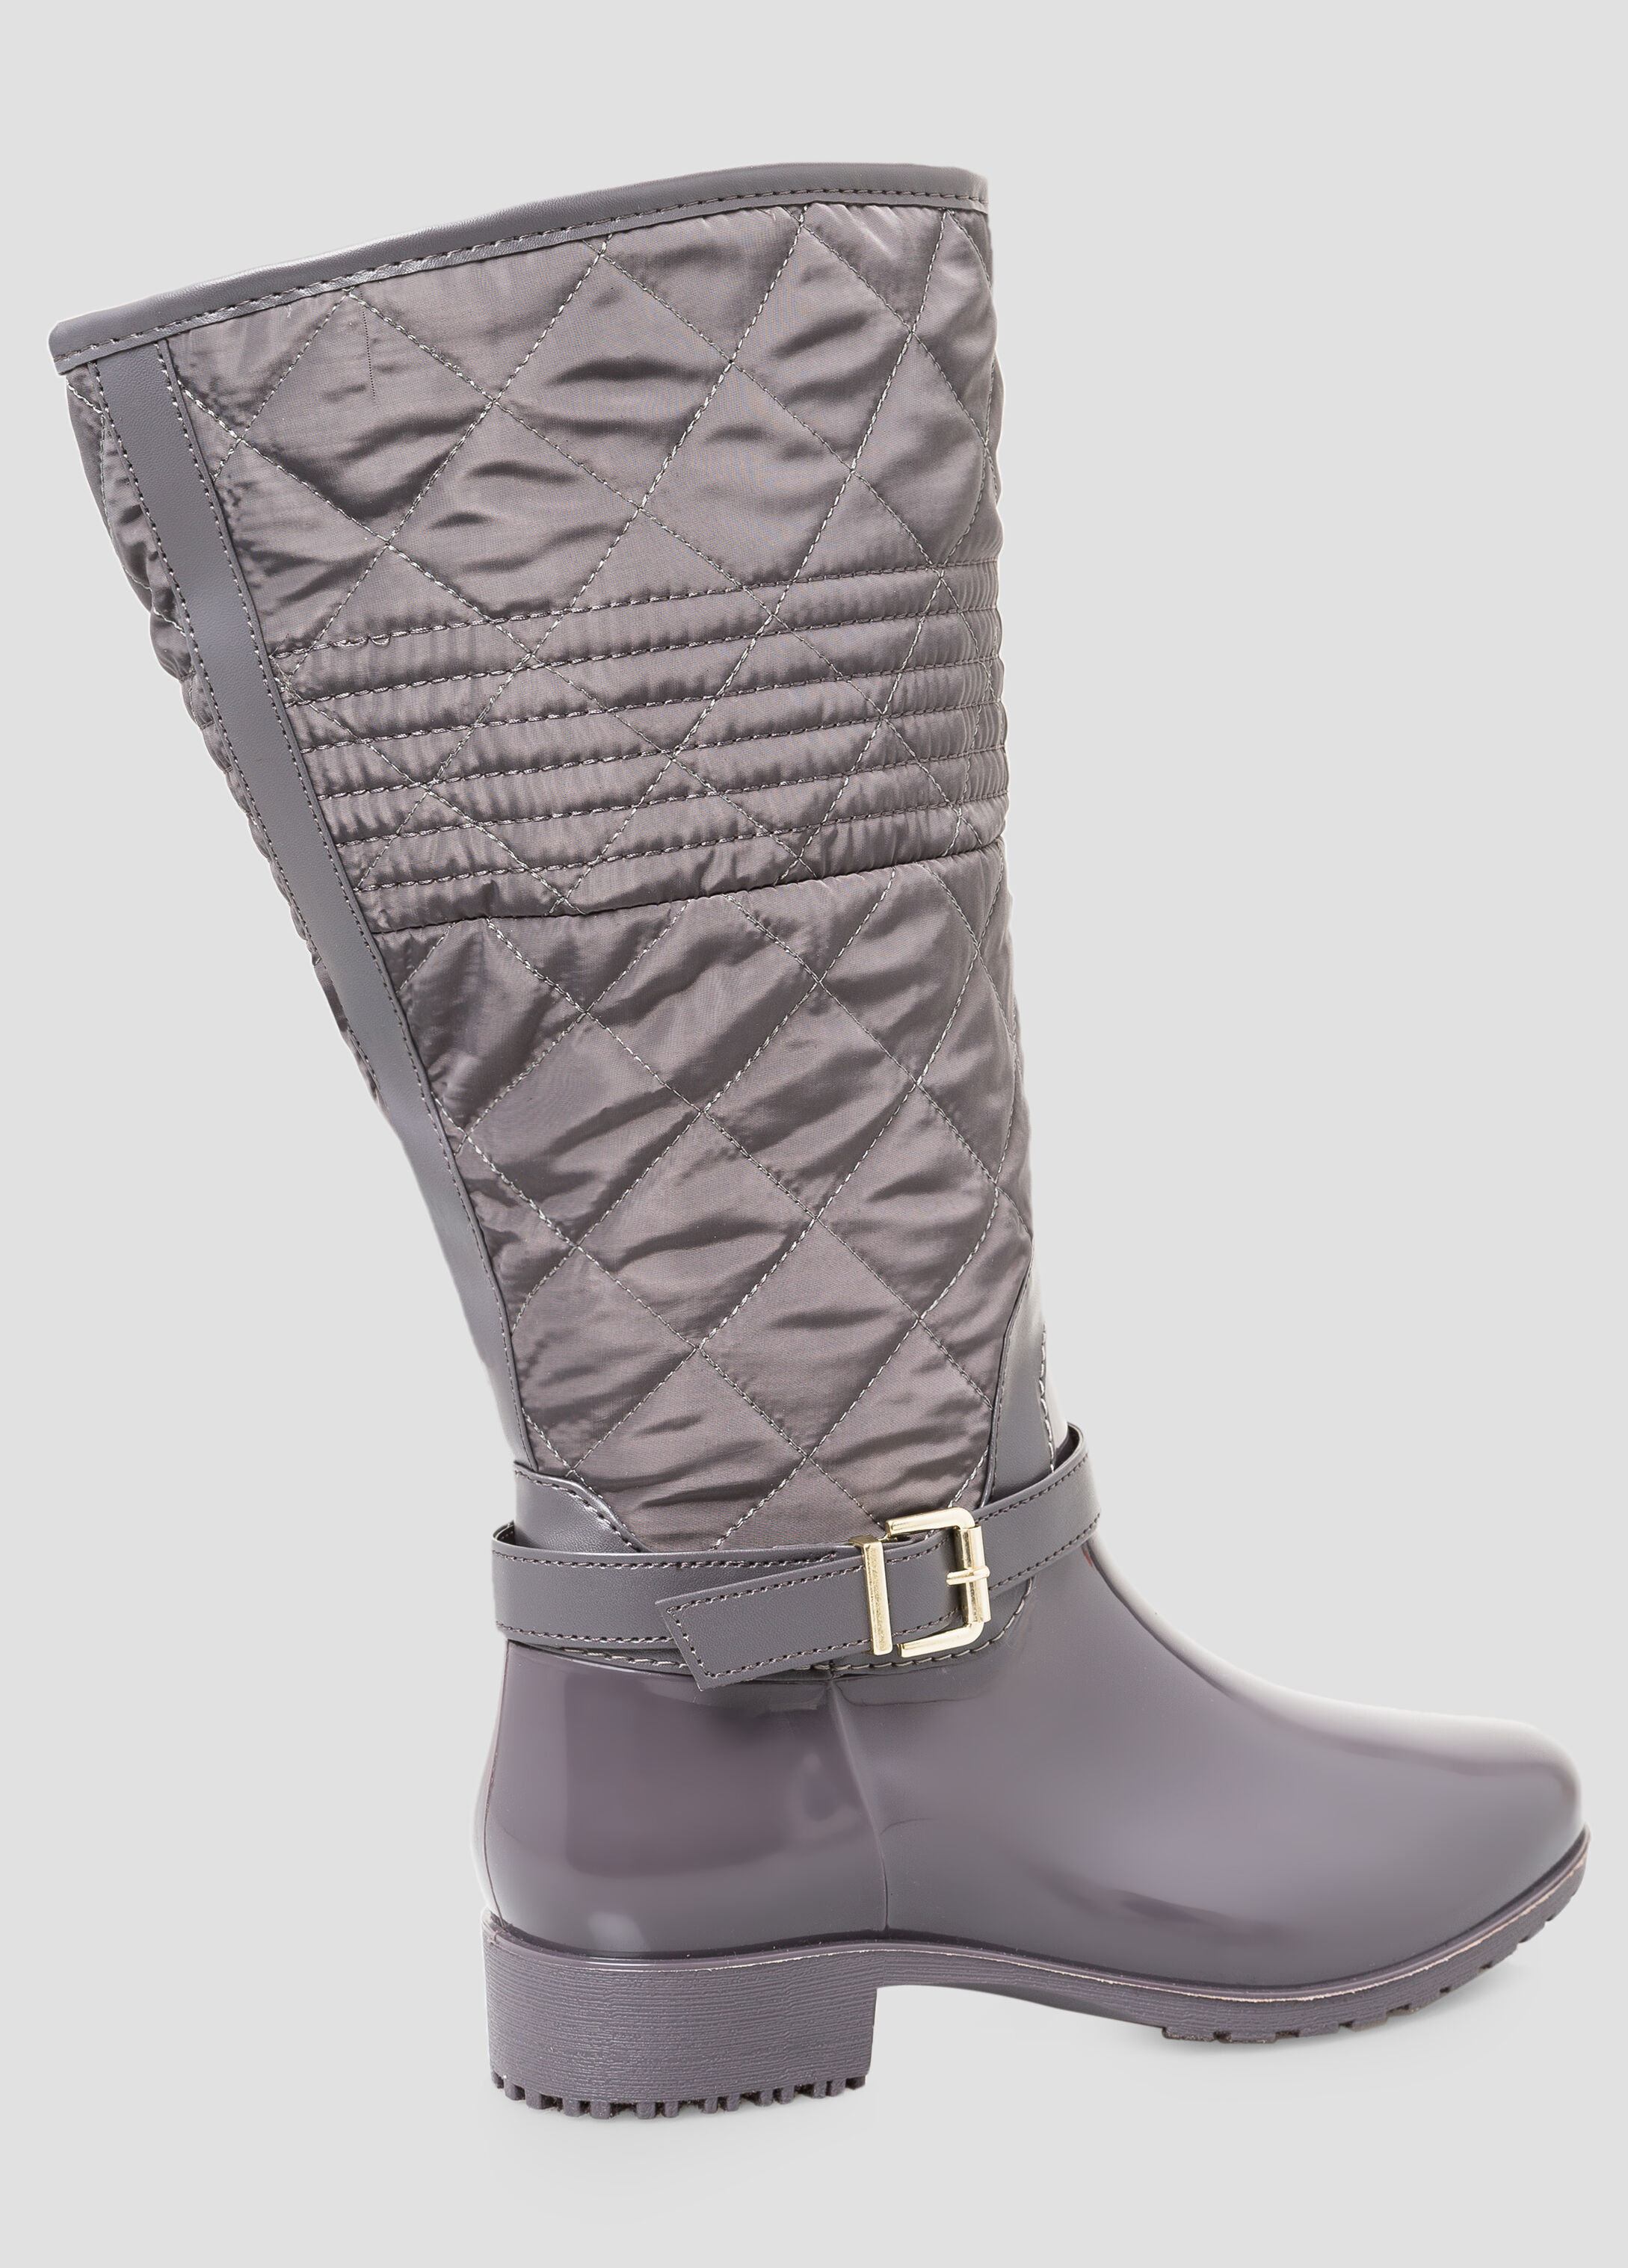 Quilted Snow Boot - Wide Calf, Wide Width